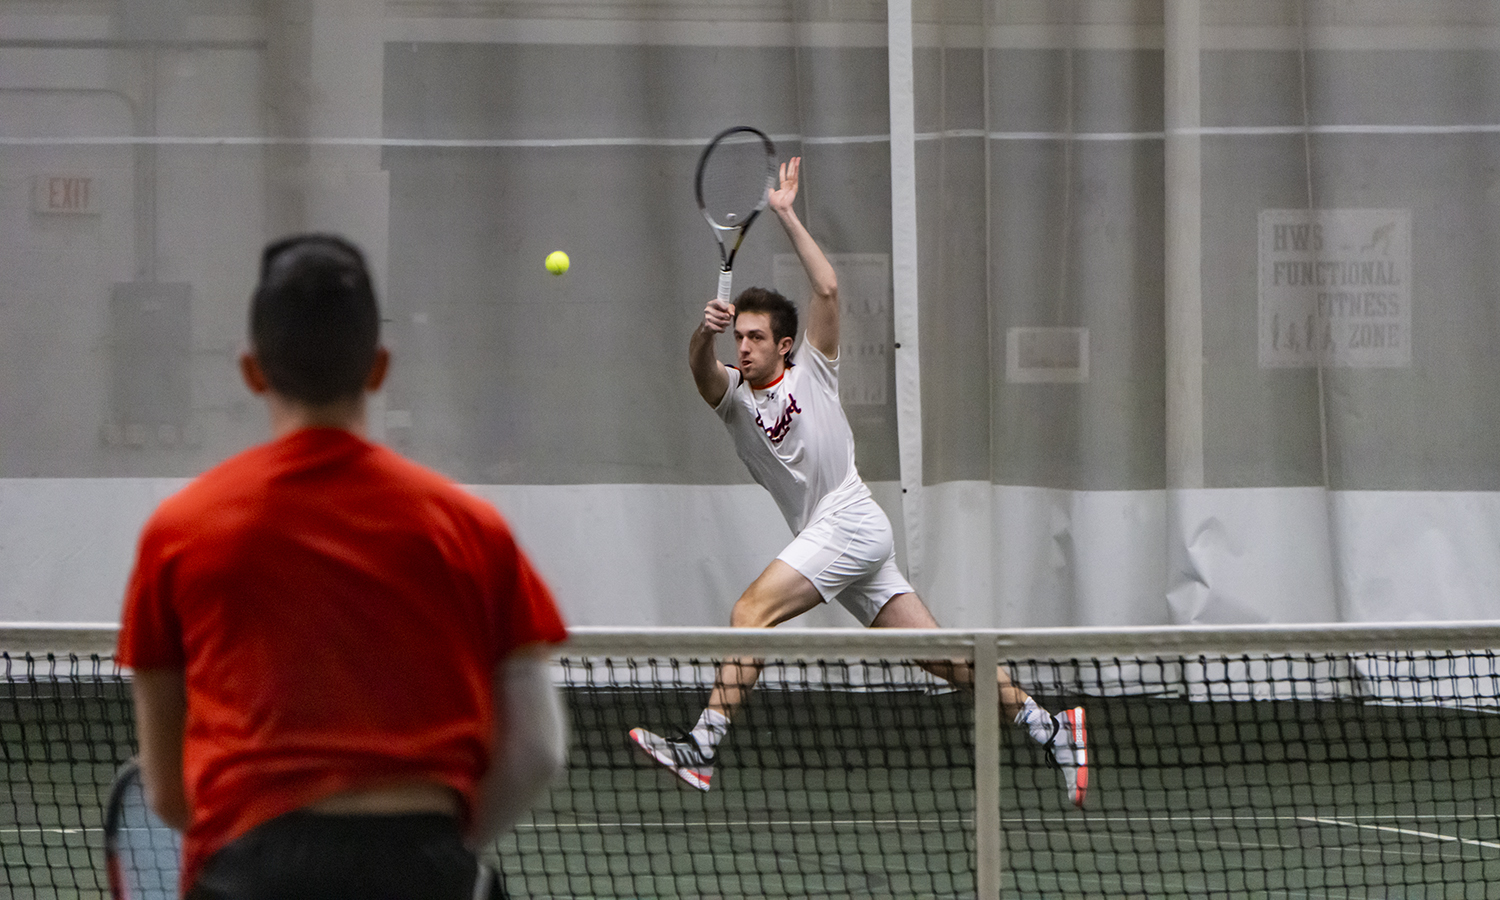 Alan Dubrovksy '20 reaches for a forehand return during Hobart's victory over Oneonta State.